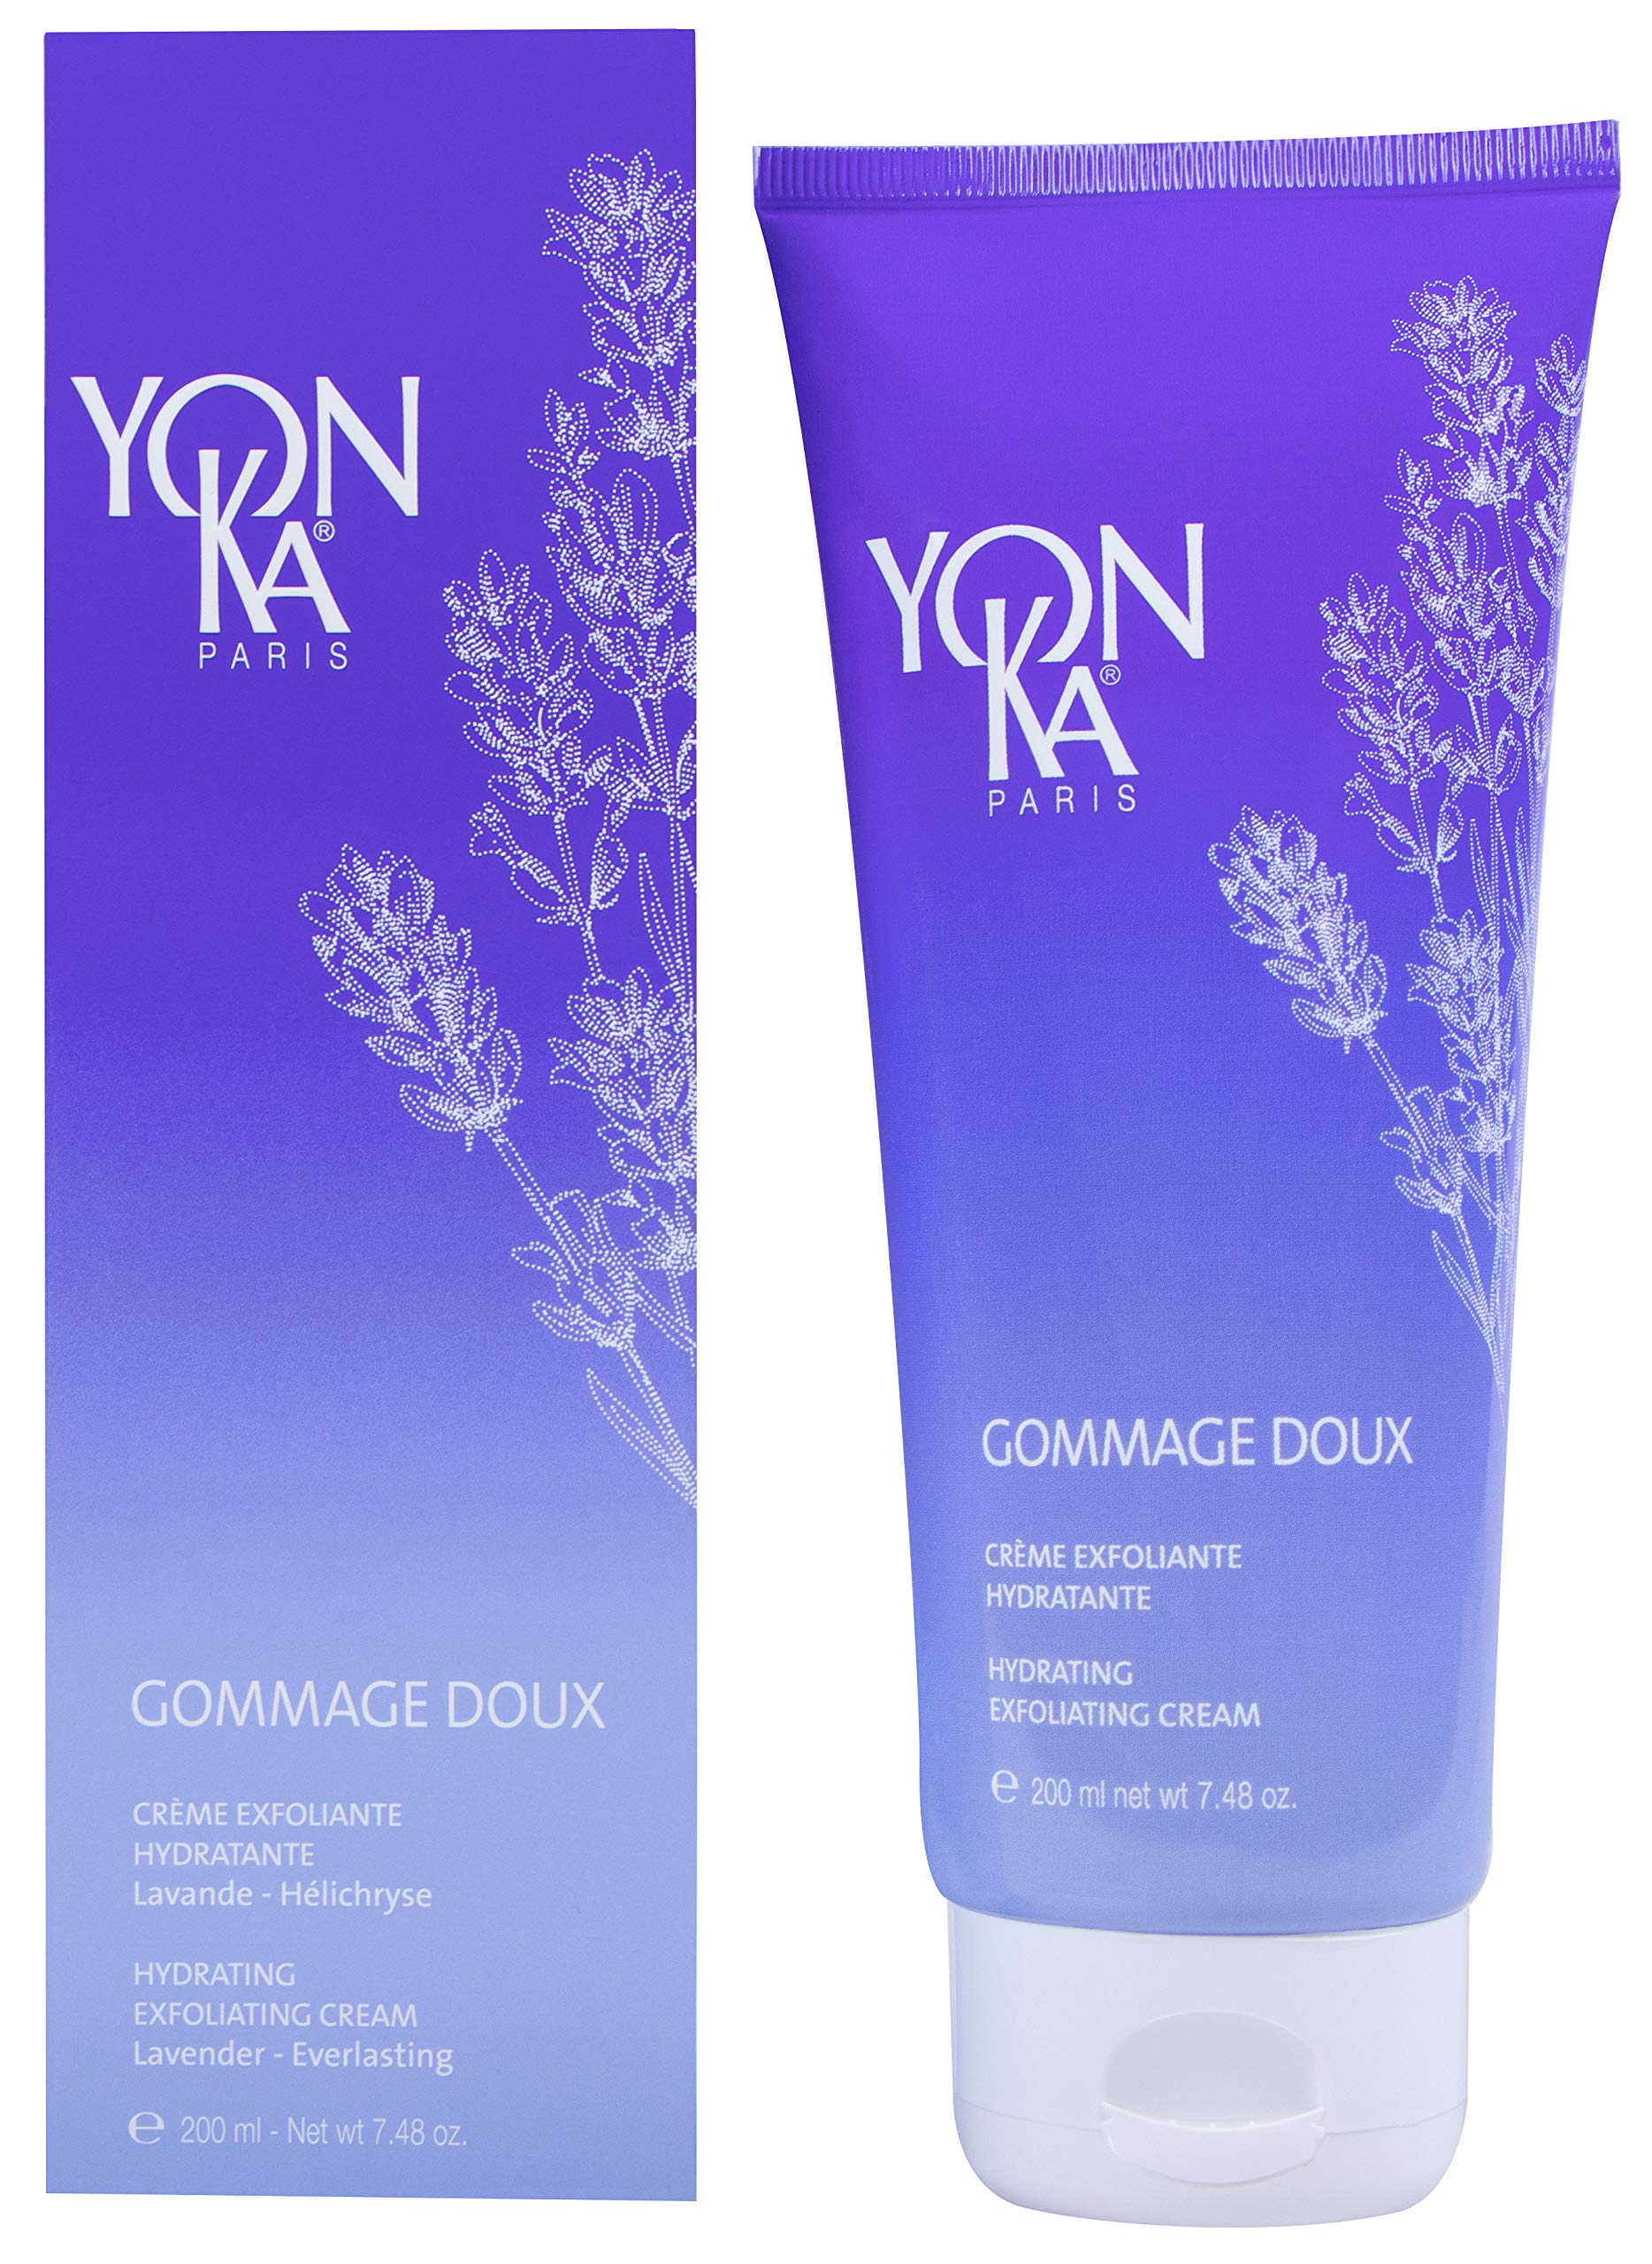 YON-KA - Gommage Doux - Hydrating Exfoliating Cream Formulated to Soften and Moisturize Your Skin ( 7.48 Ounces / 200 Milliliters )